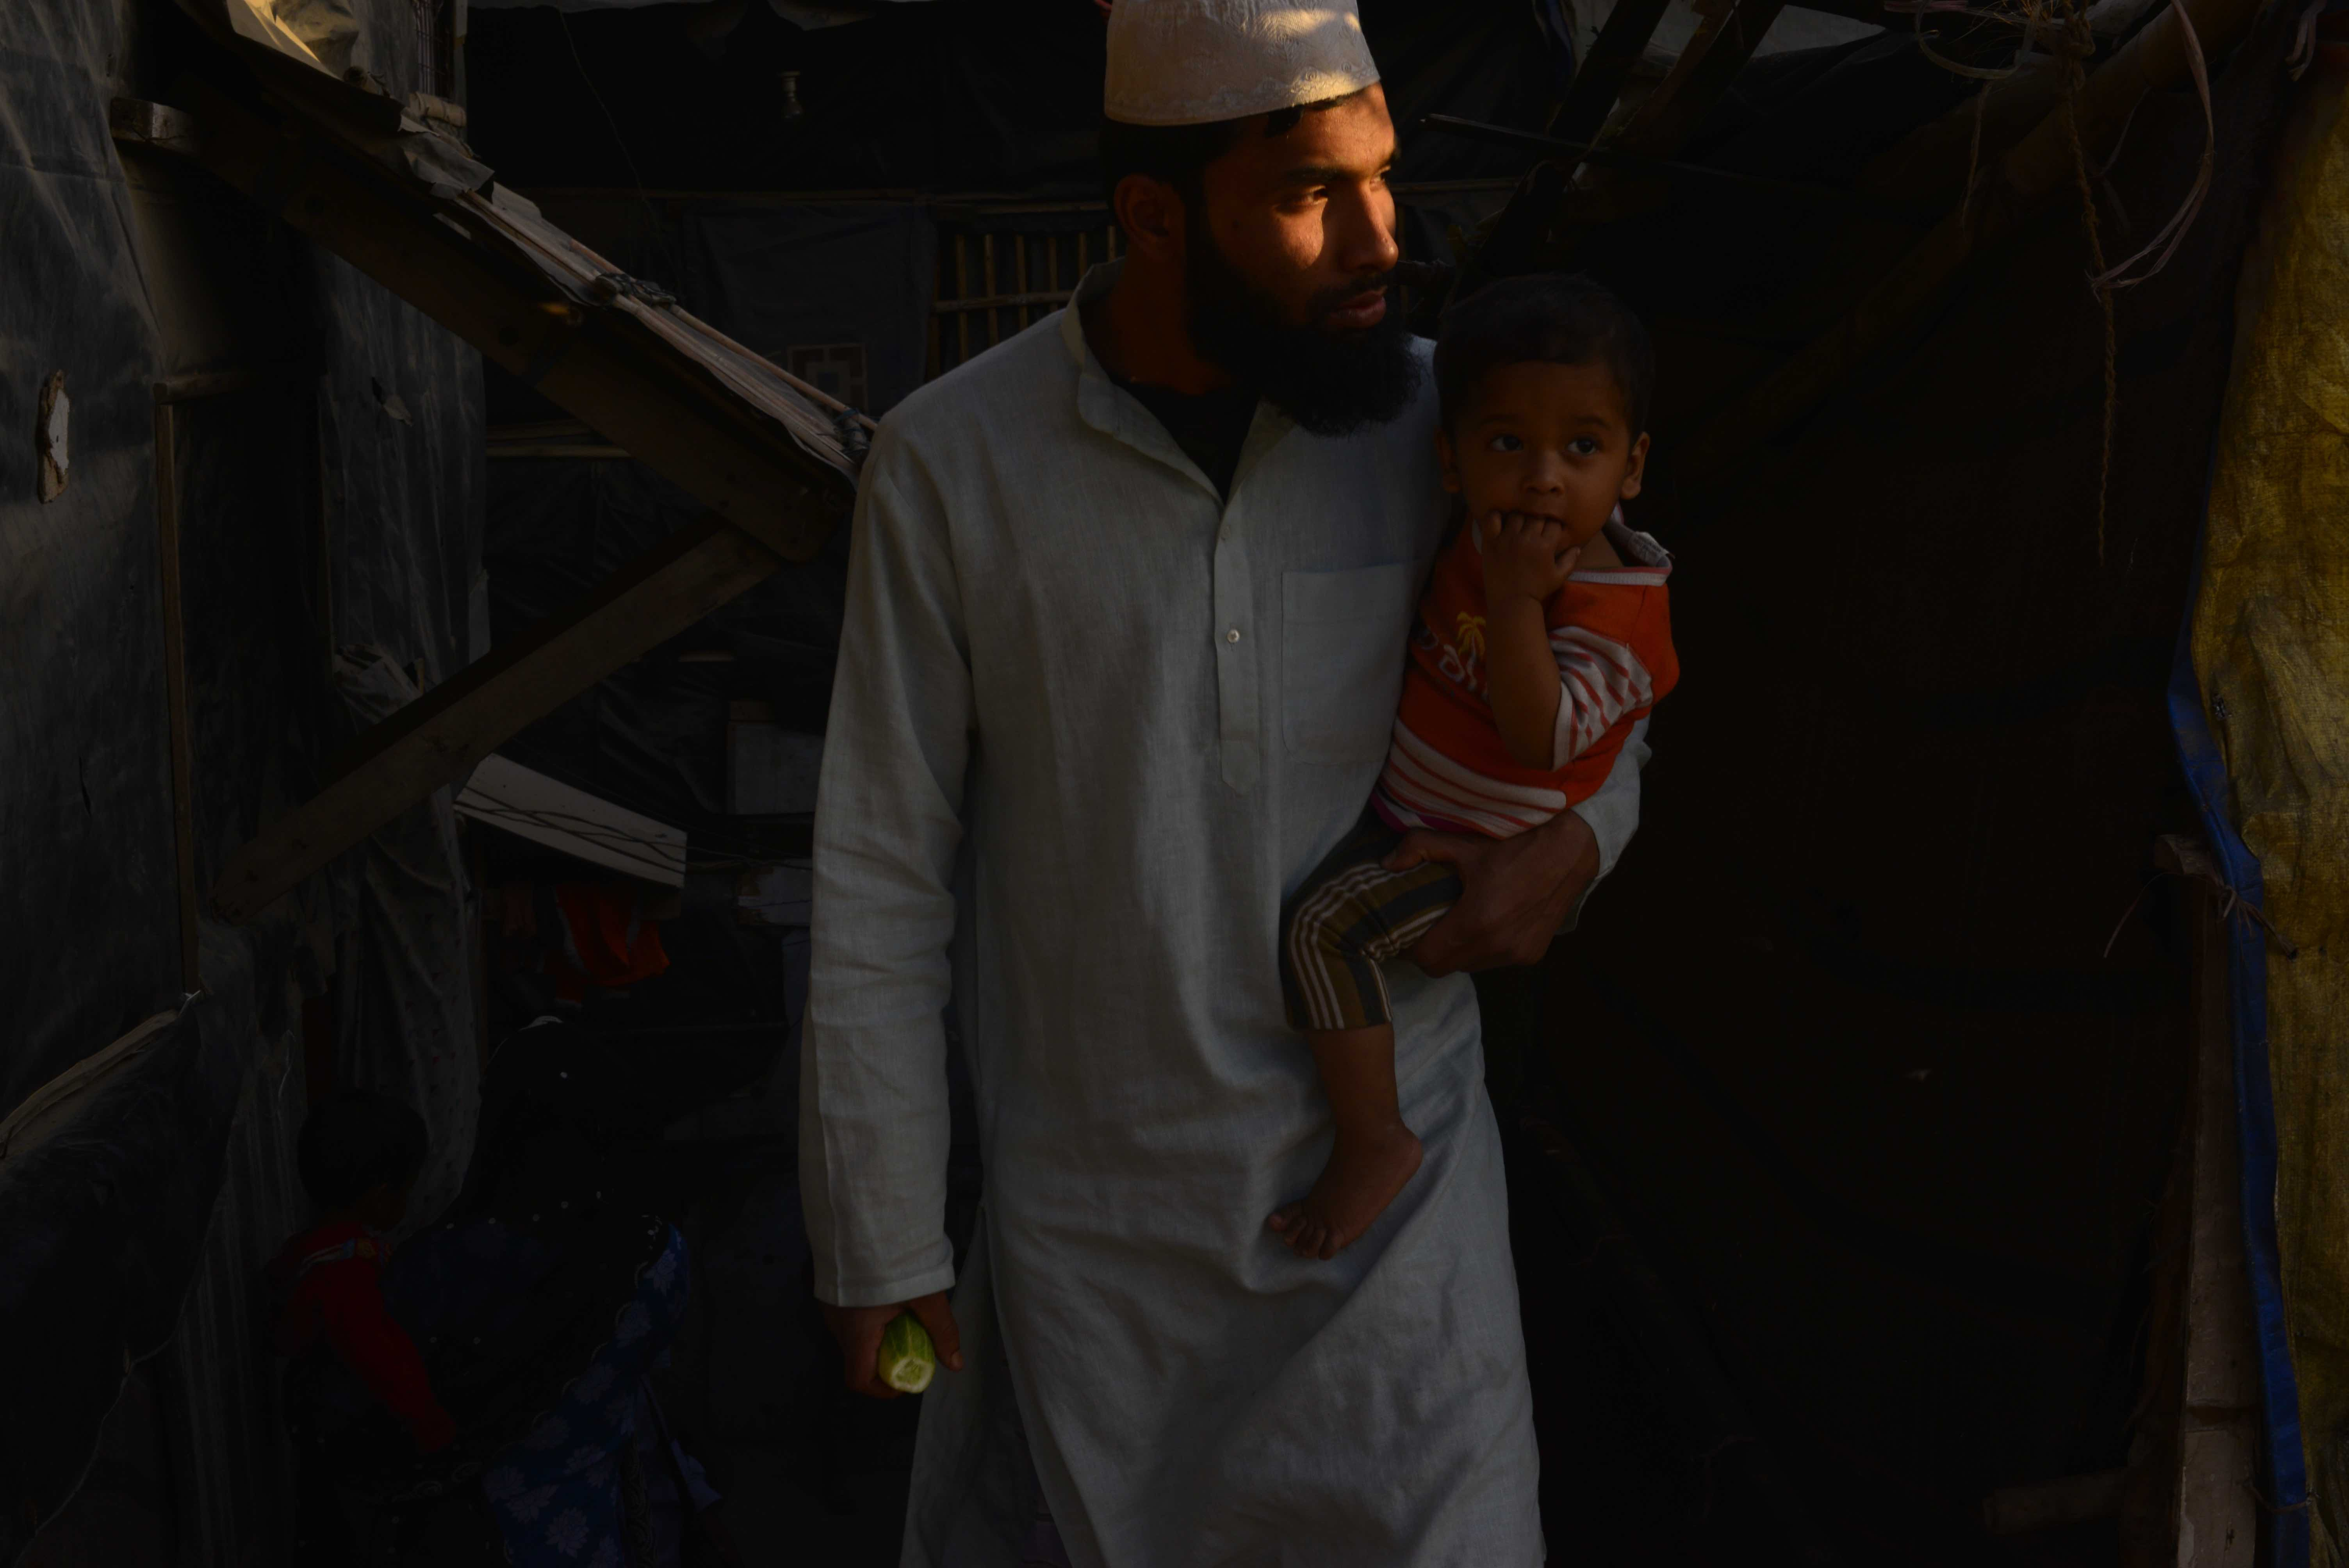 Maulana Mohd. Jauhar. He came to India in year 2012.